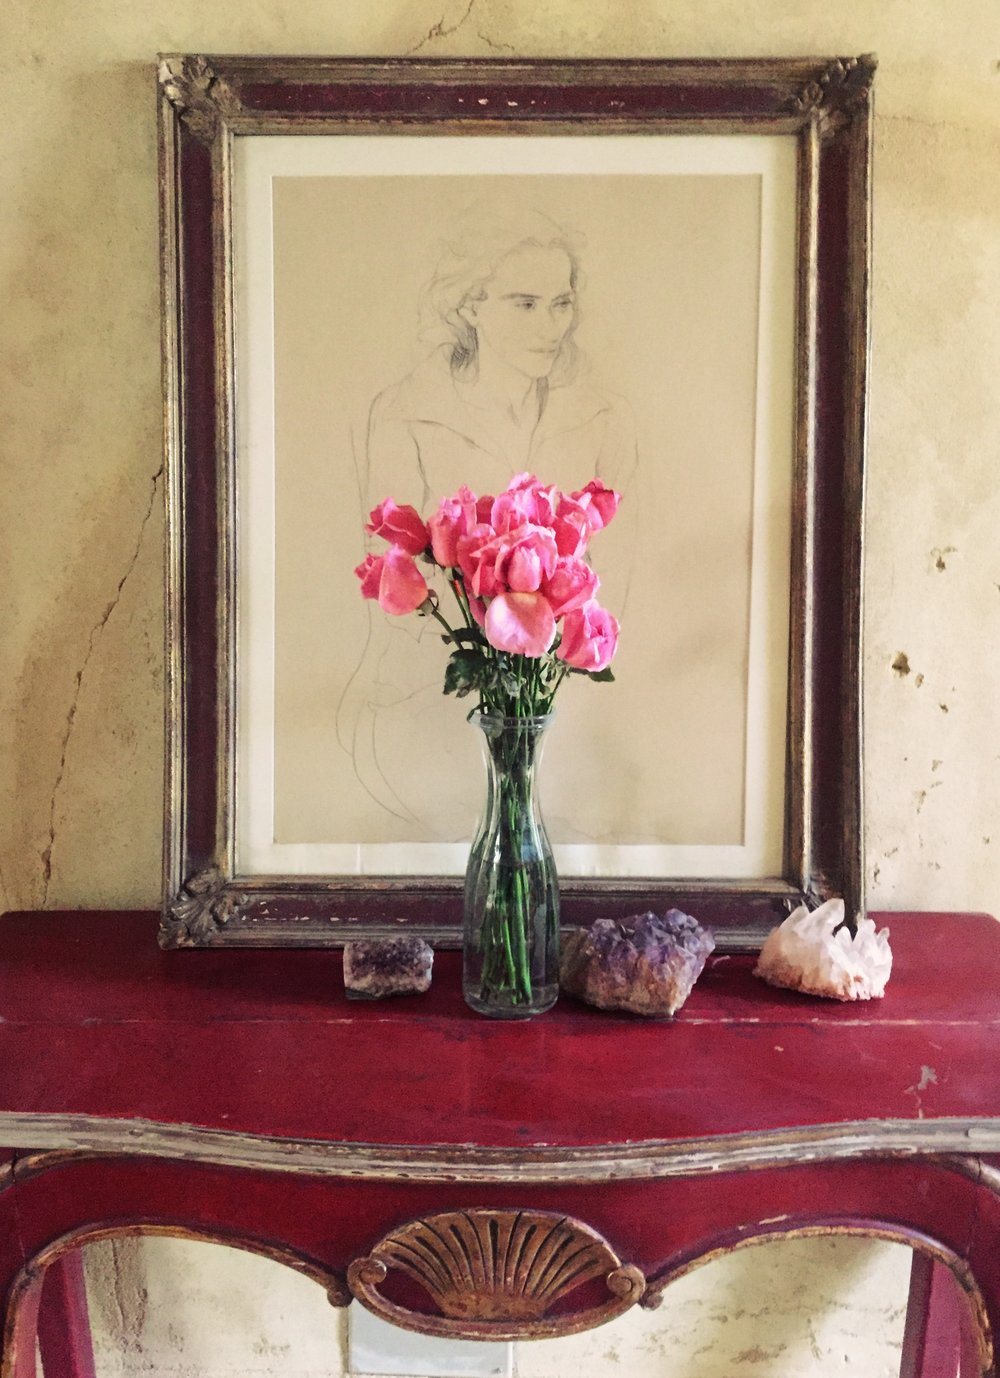 A drawing in the foyer of the house, Quartz and Amysthst crystals on the table and roses from Cairo.